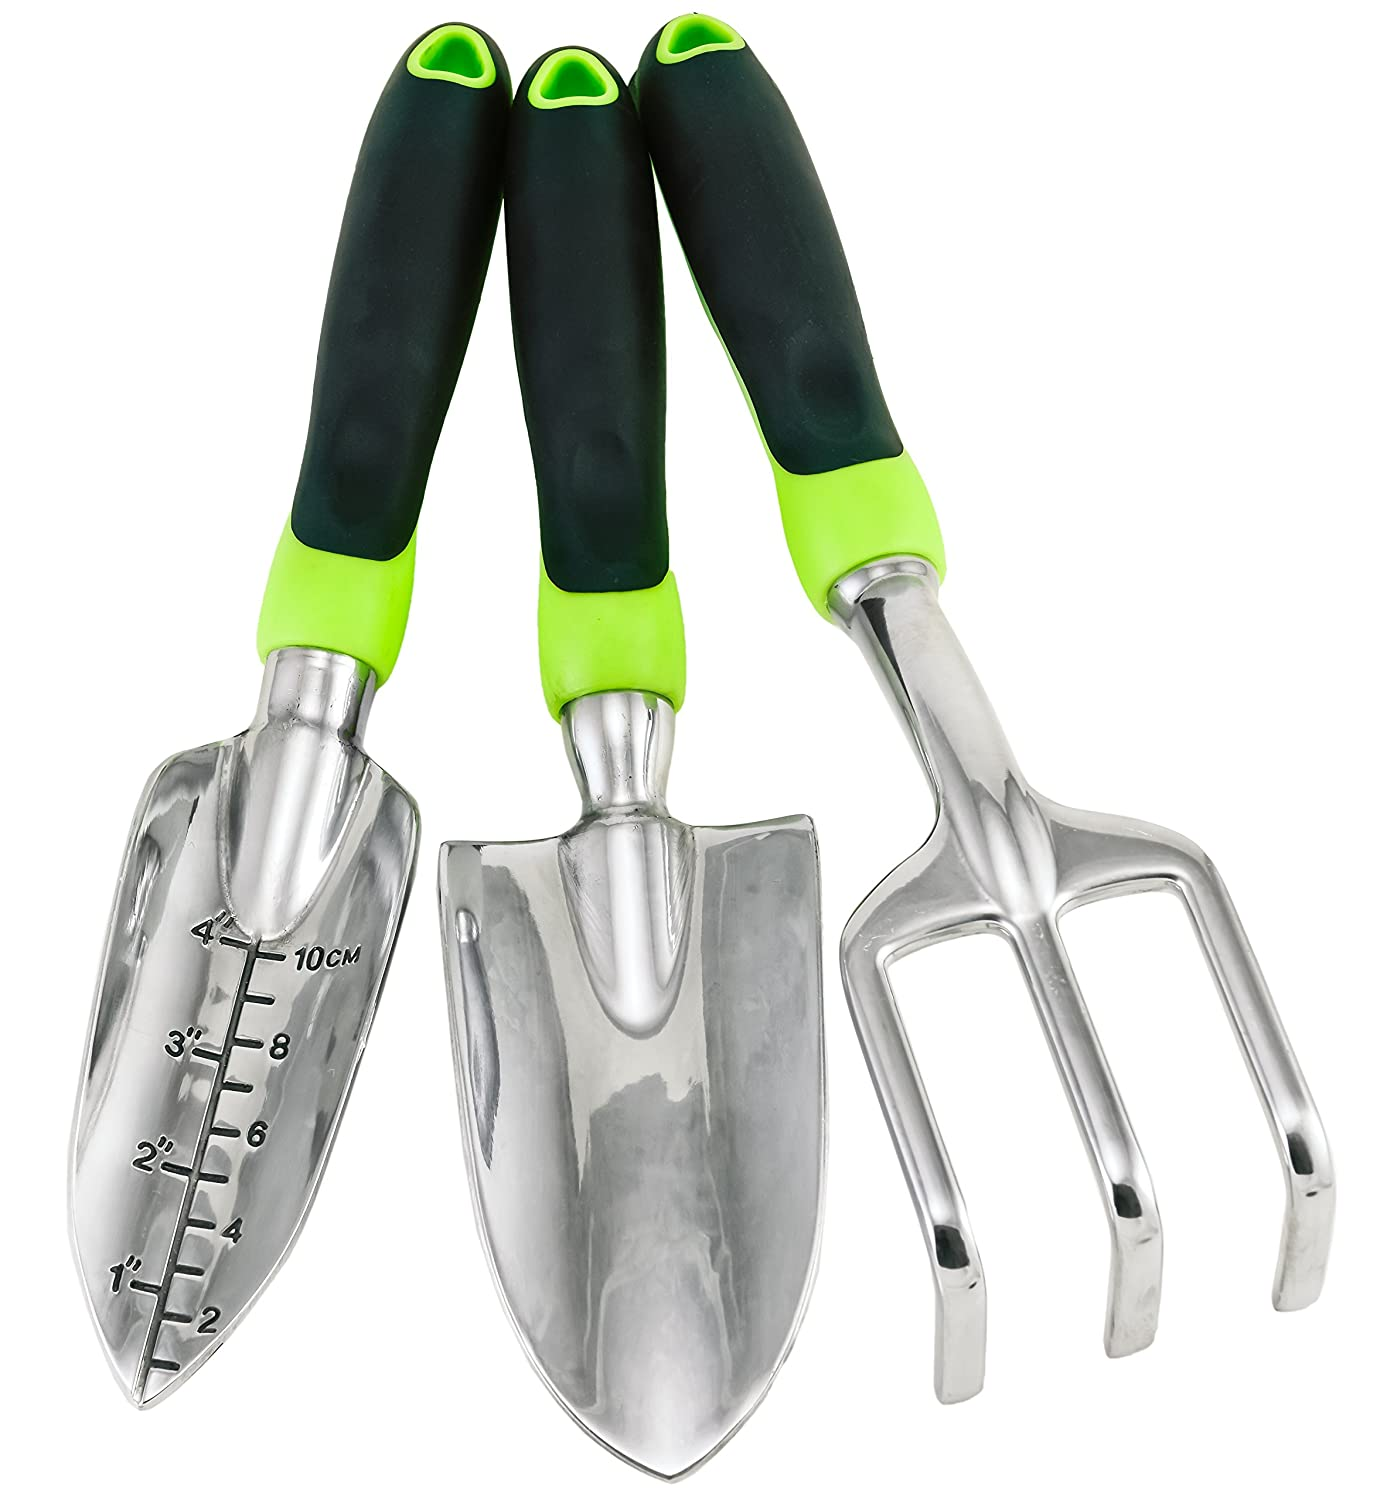 Hand gardening tools images galleries for Big hands for gardening